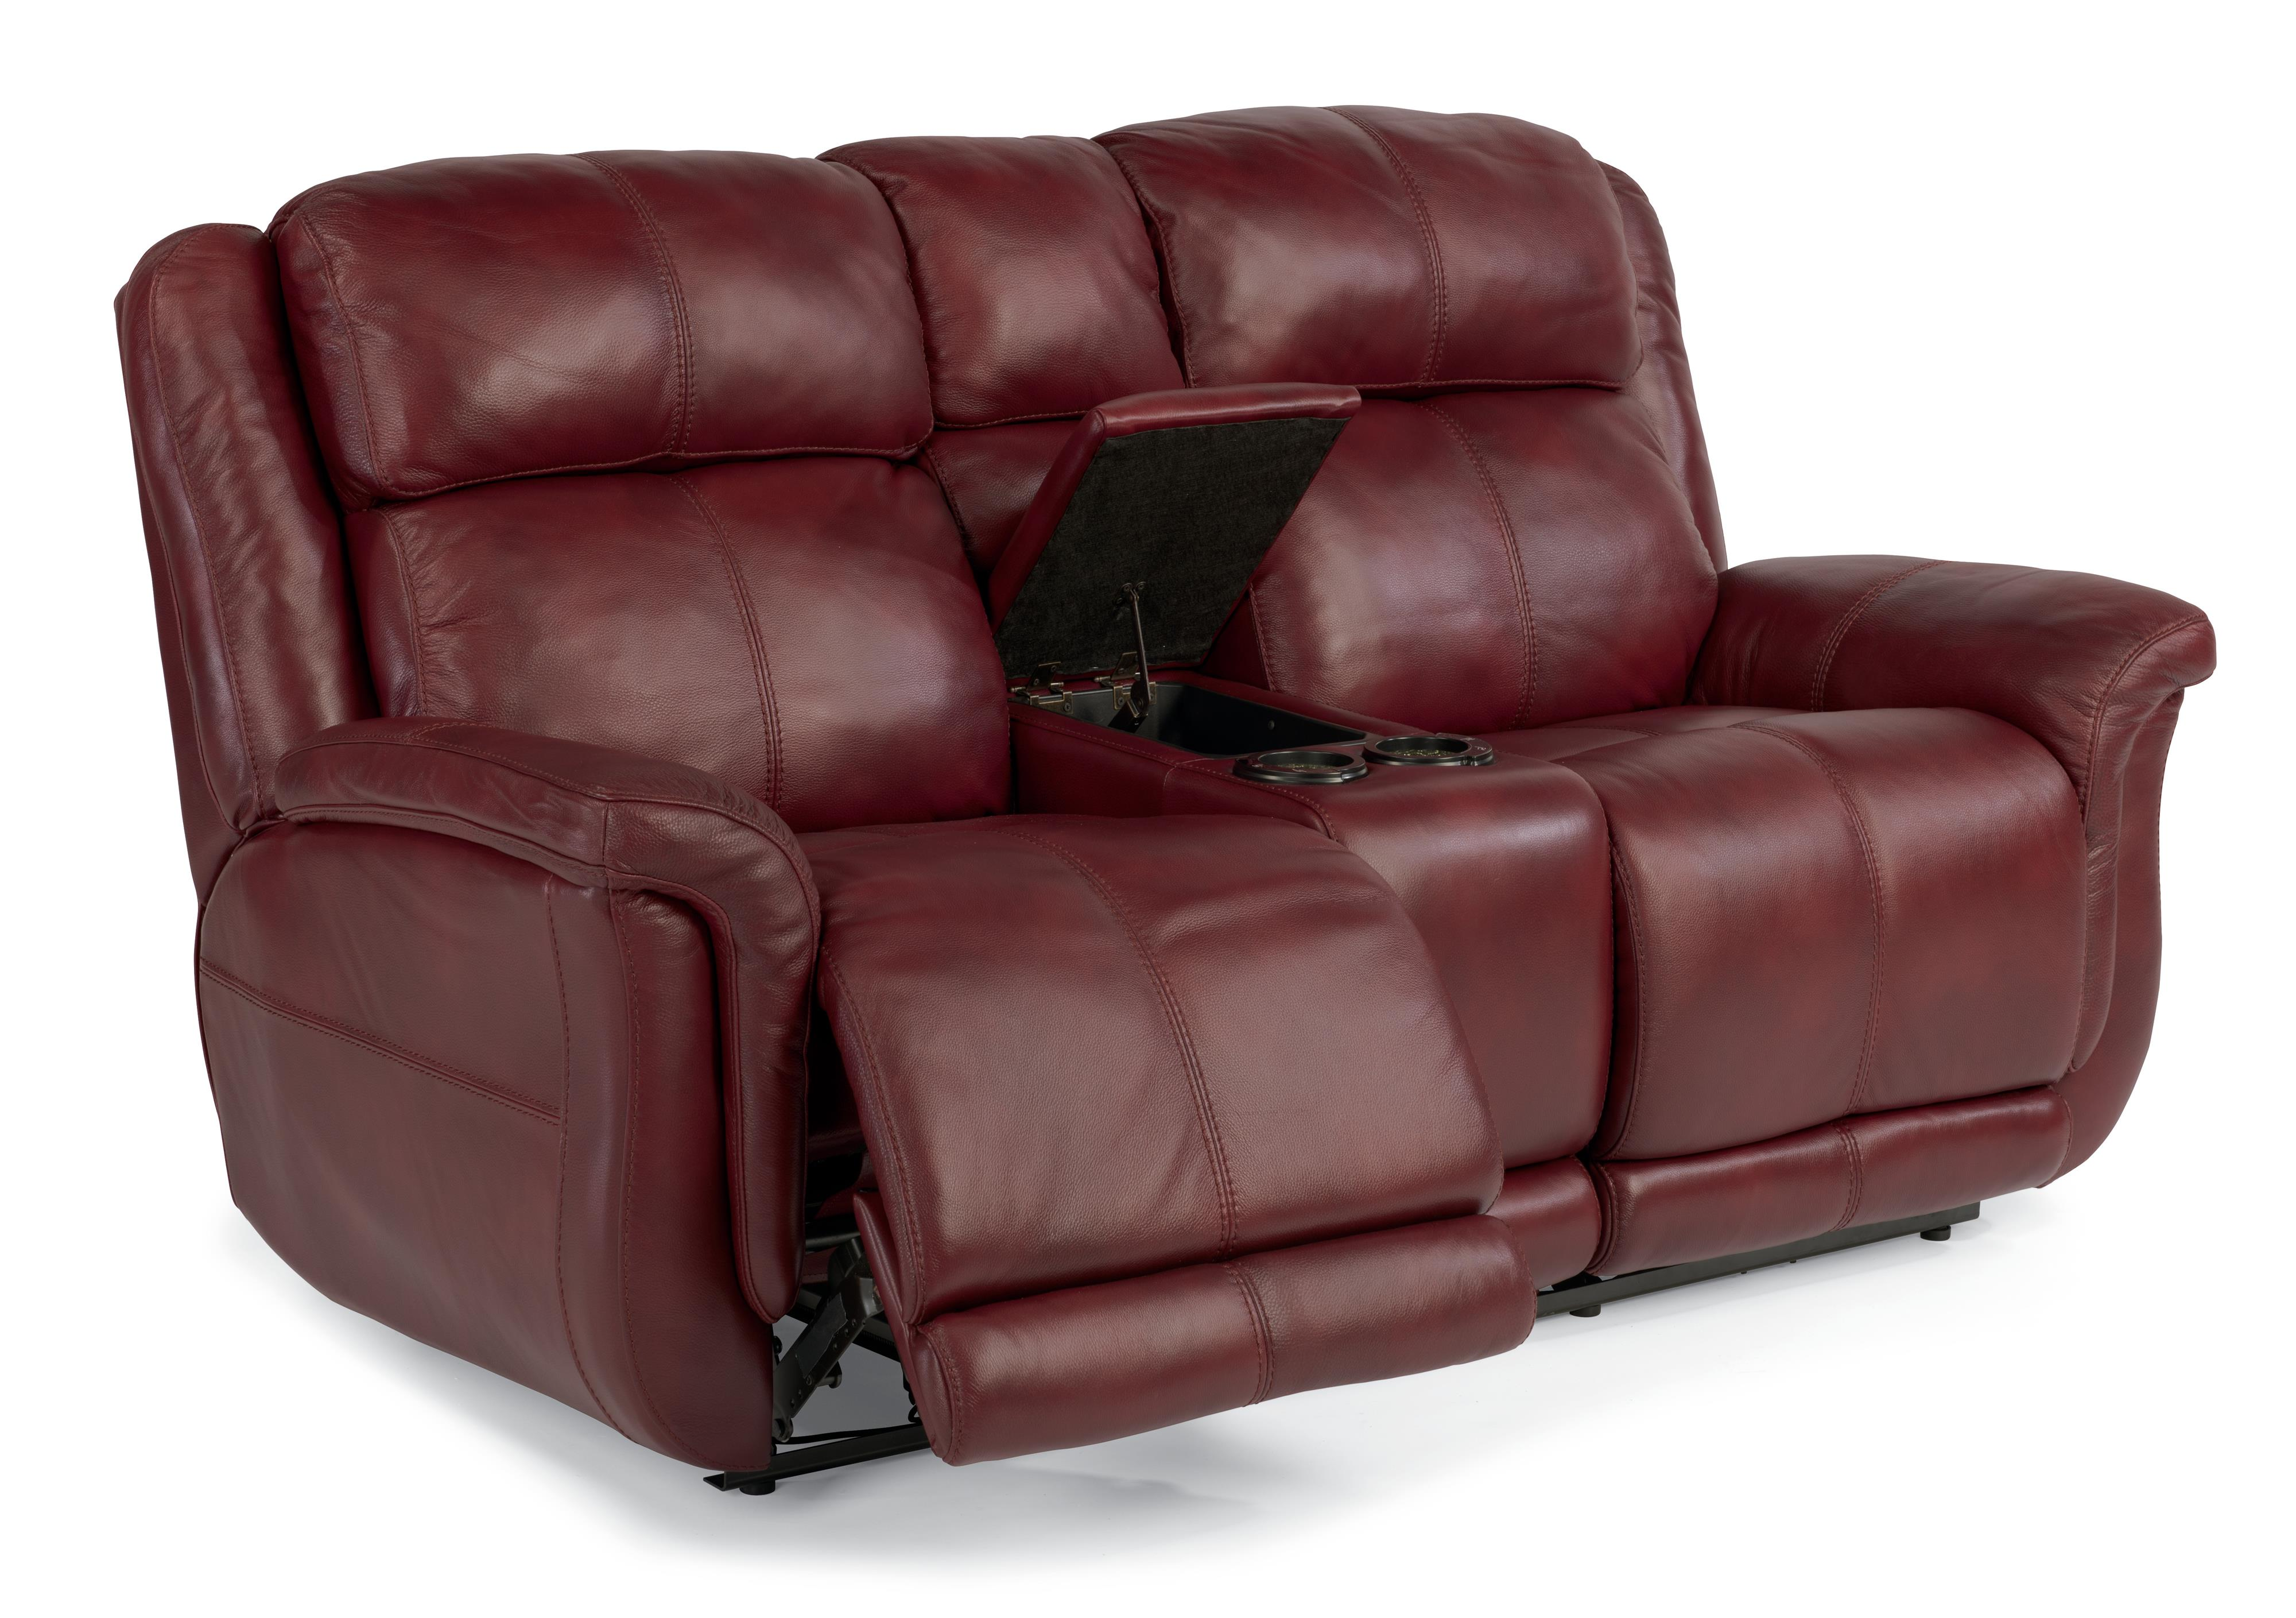 Flexsteel Latitudes-Brookings Power Reclining Loveseat w/ Console - Item Number: 1251-604P-LSP-60